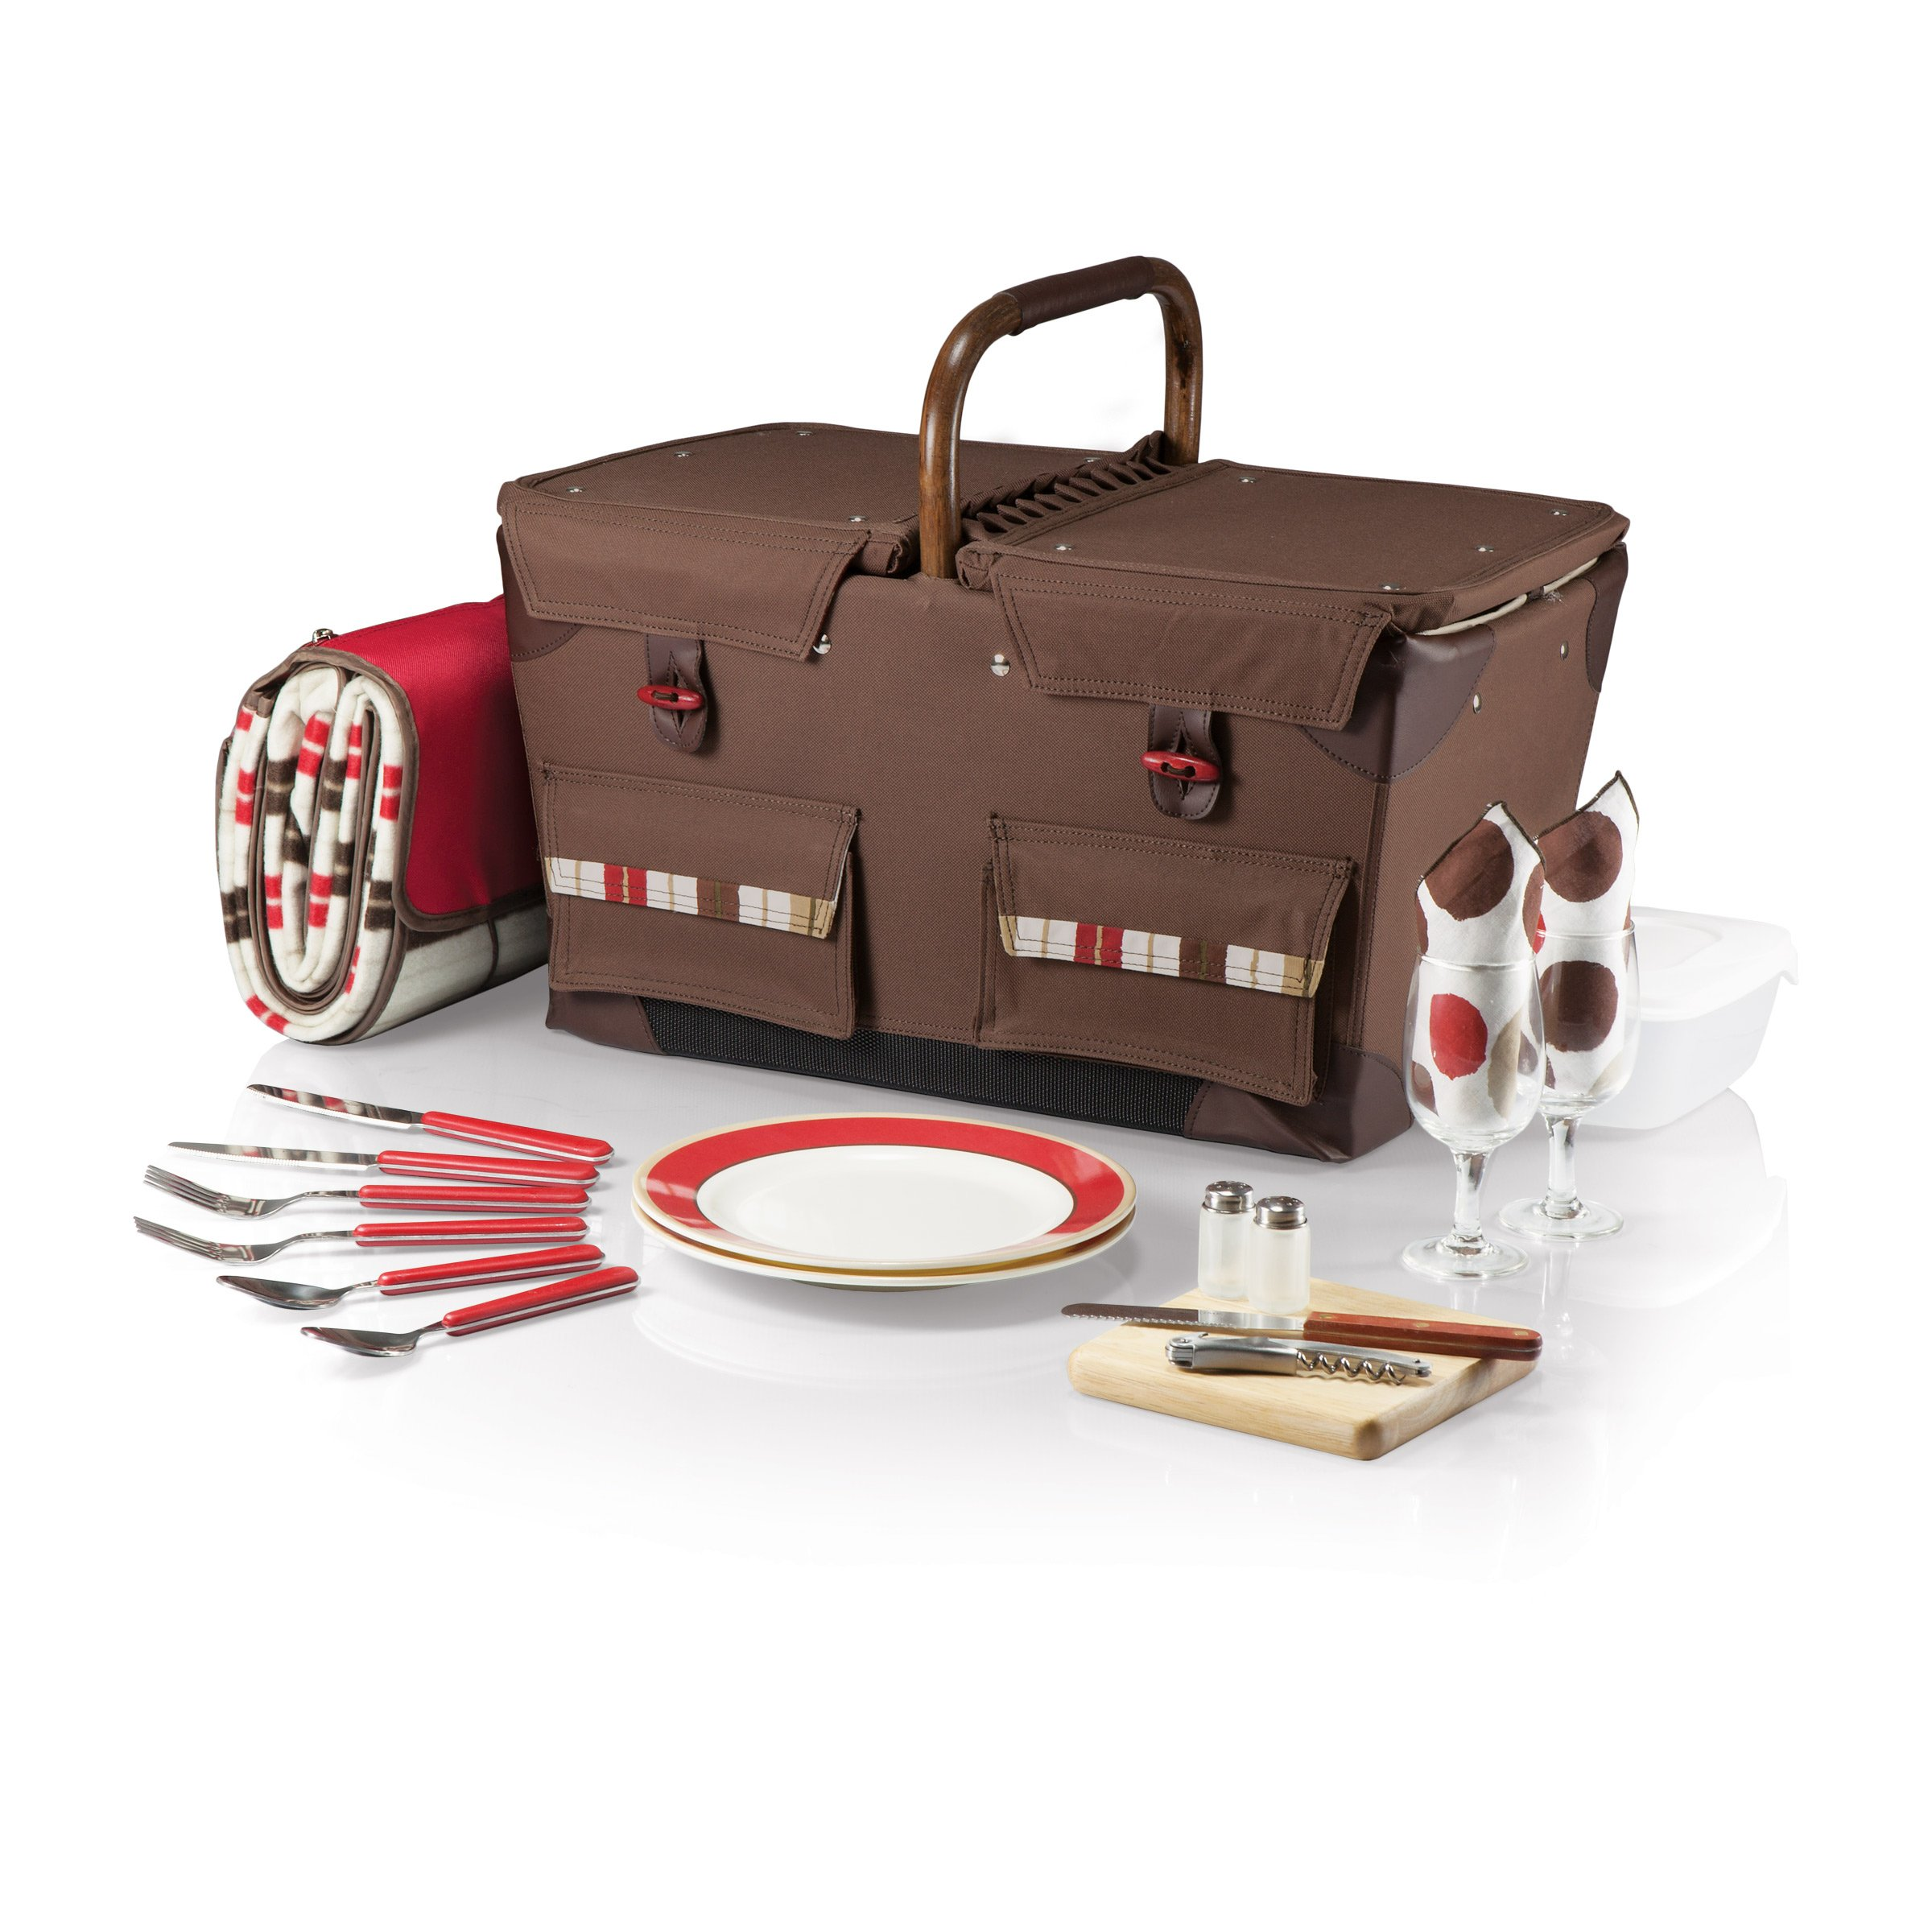 Picnic Time Pioneer Original Design Picnic Basket with Deluxe Service for Two, Moka Collection by PICNIC TIME